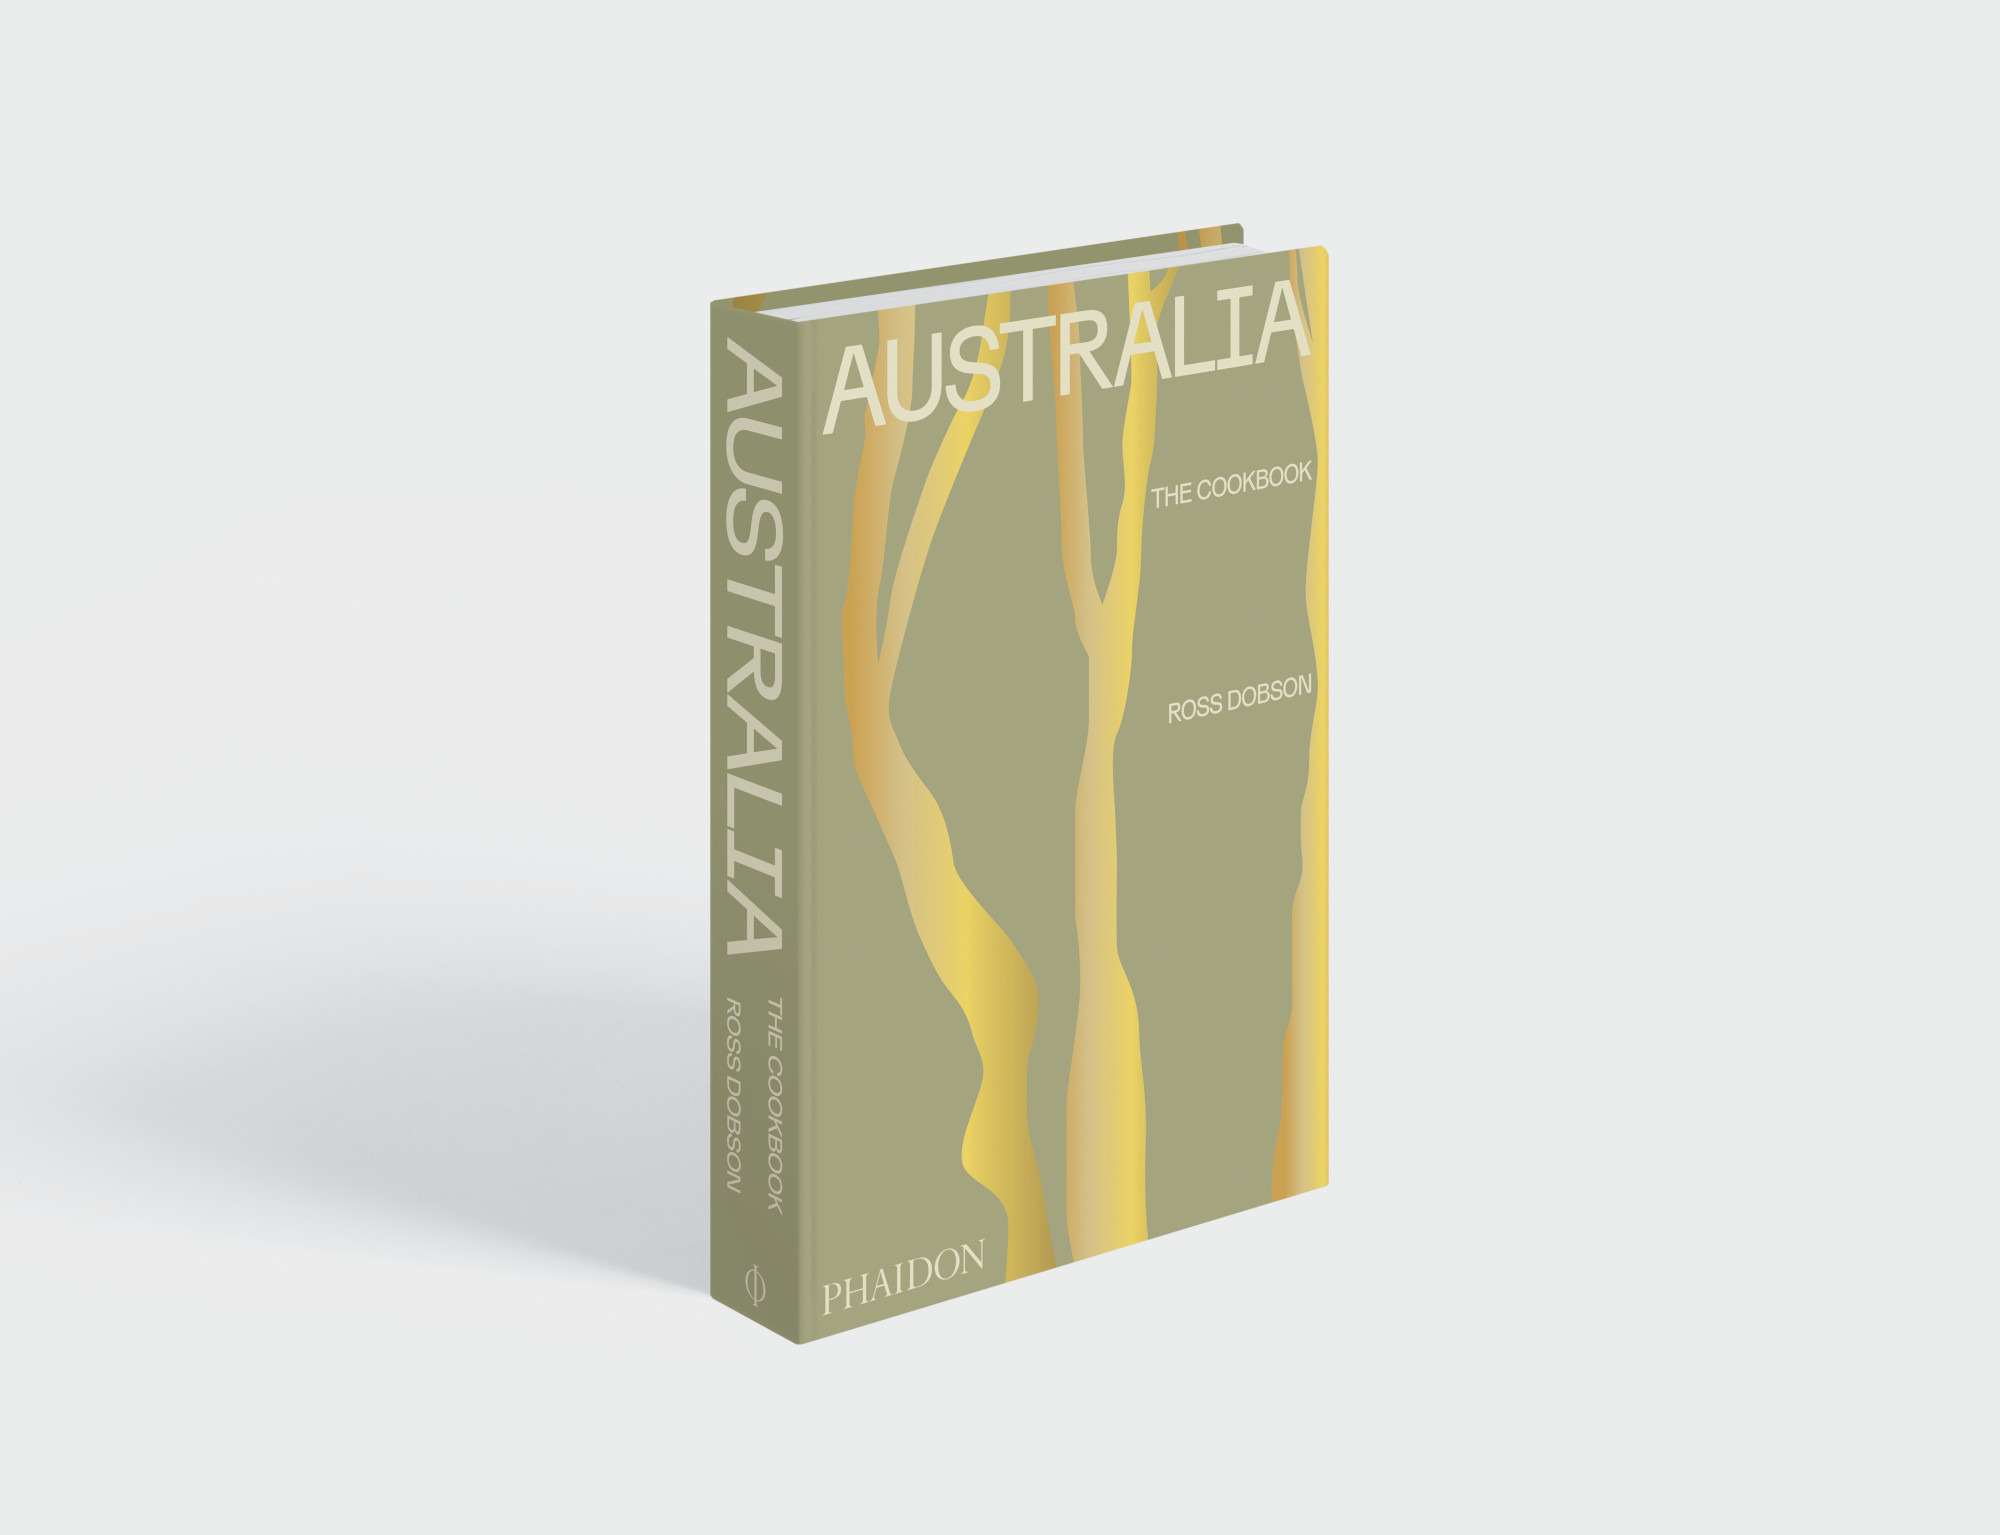 The NY Times rediscovers Aussie cuisine via our new book